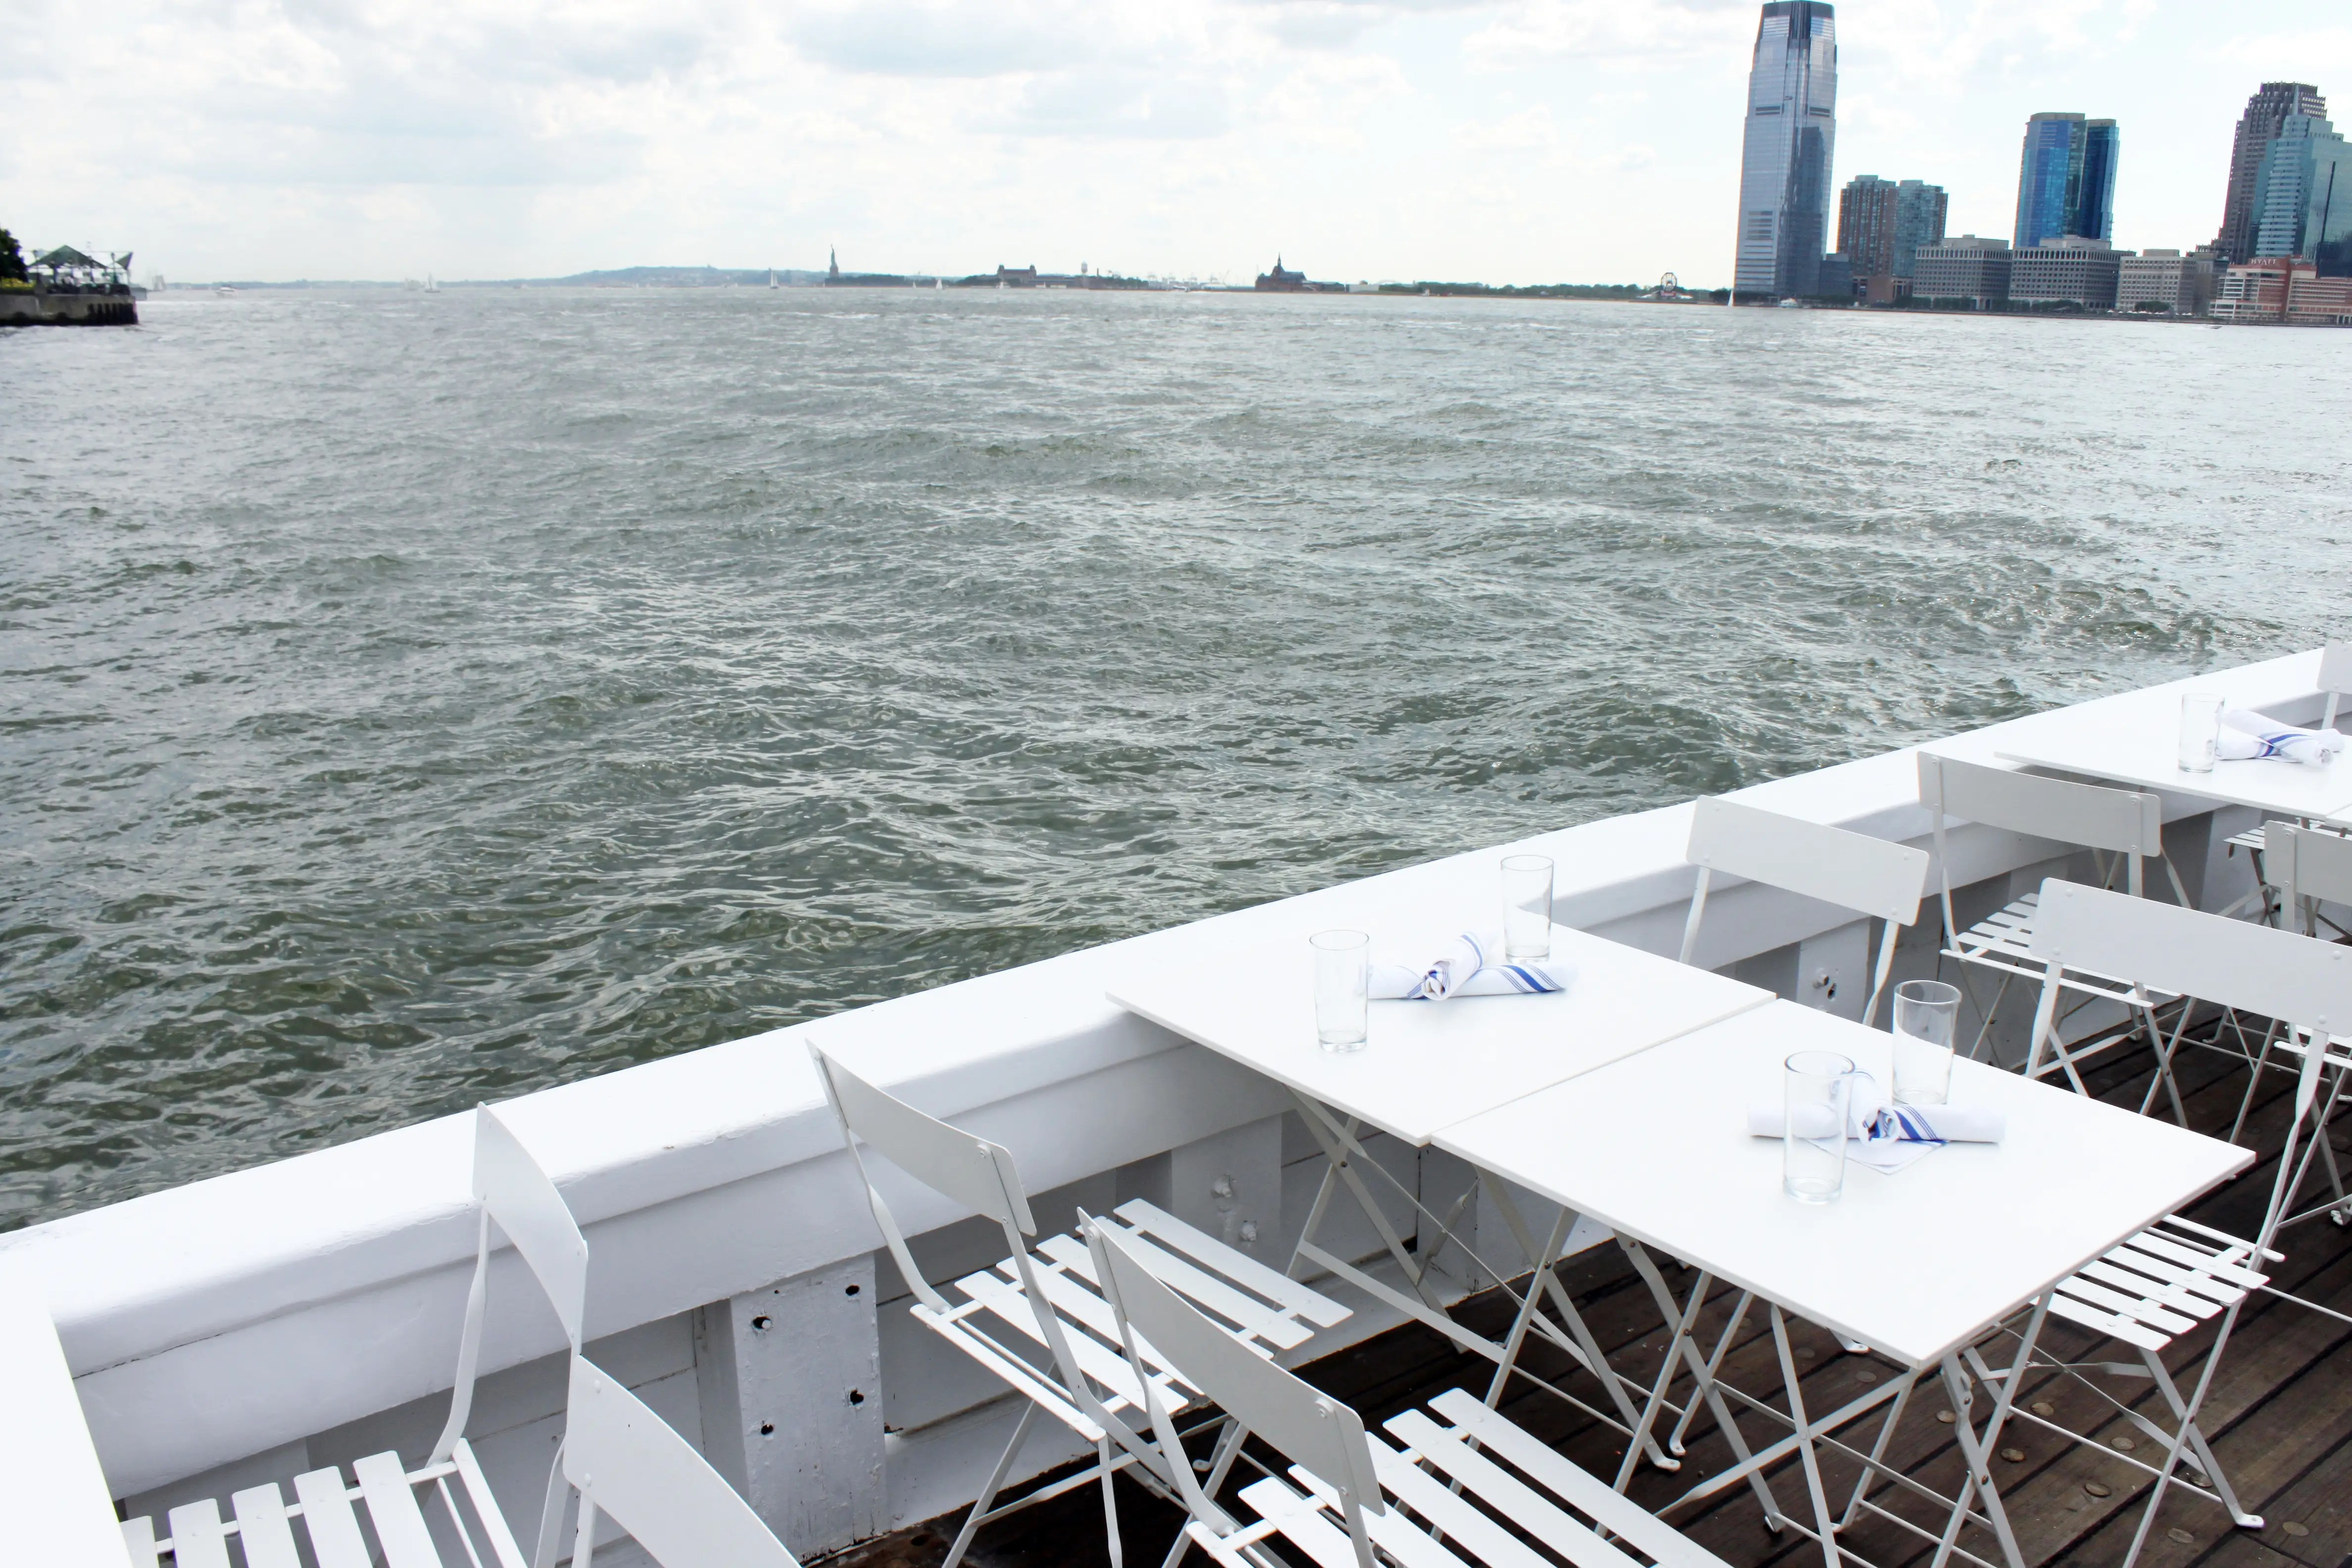 """We asked if the waves and rocking boat were even an issue. Owner Alex Pincus told us, """"Our crew is used to it and our guests usually get excited by it. I do think the rocking adds to the feeling of escape."""""""